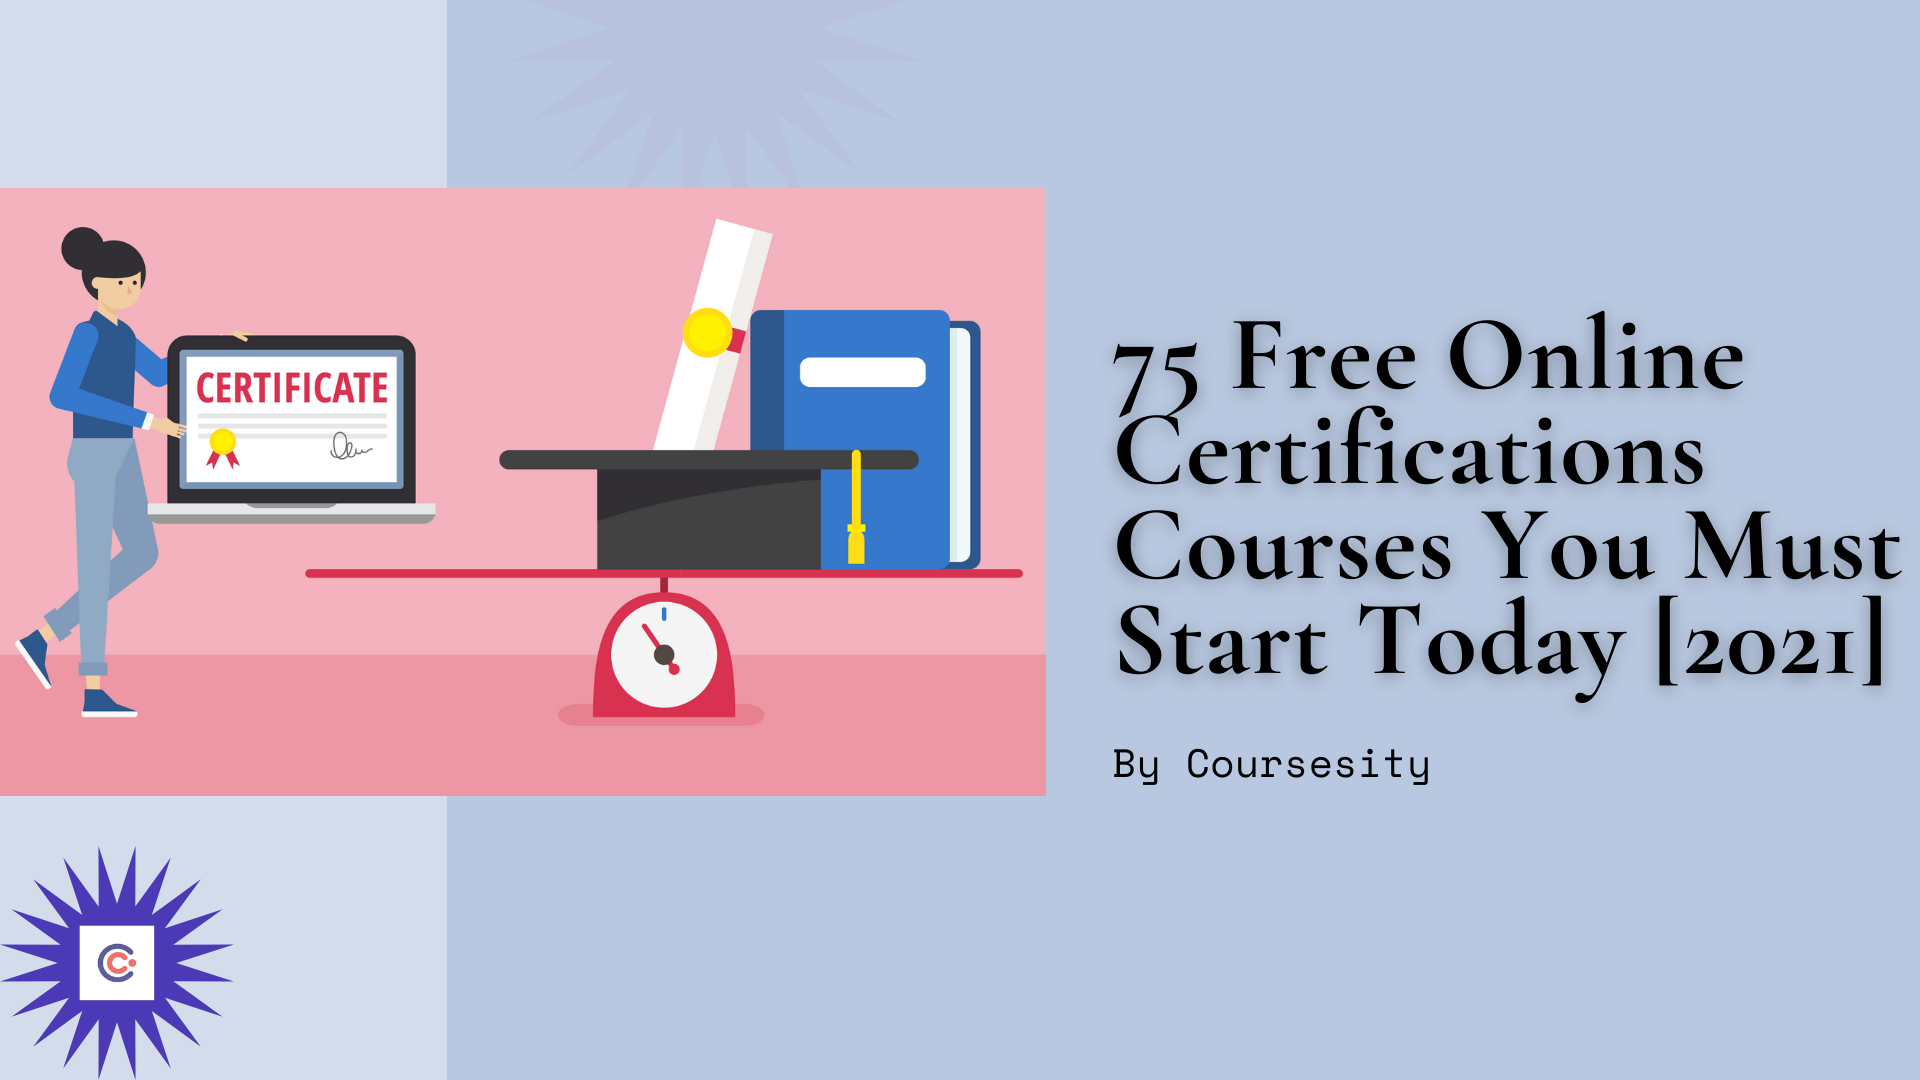 75 Free Online Certifications Courses You Must Start Today [2021]